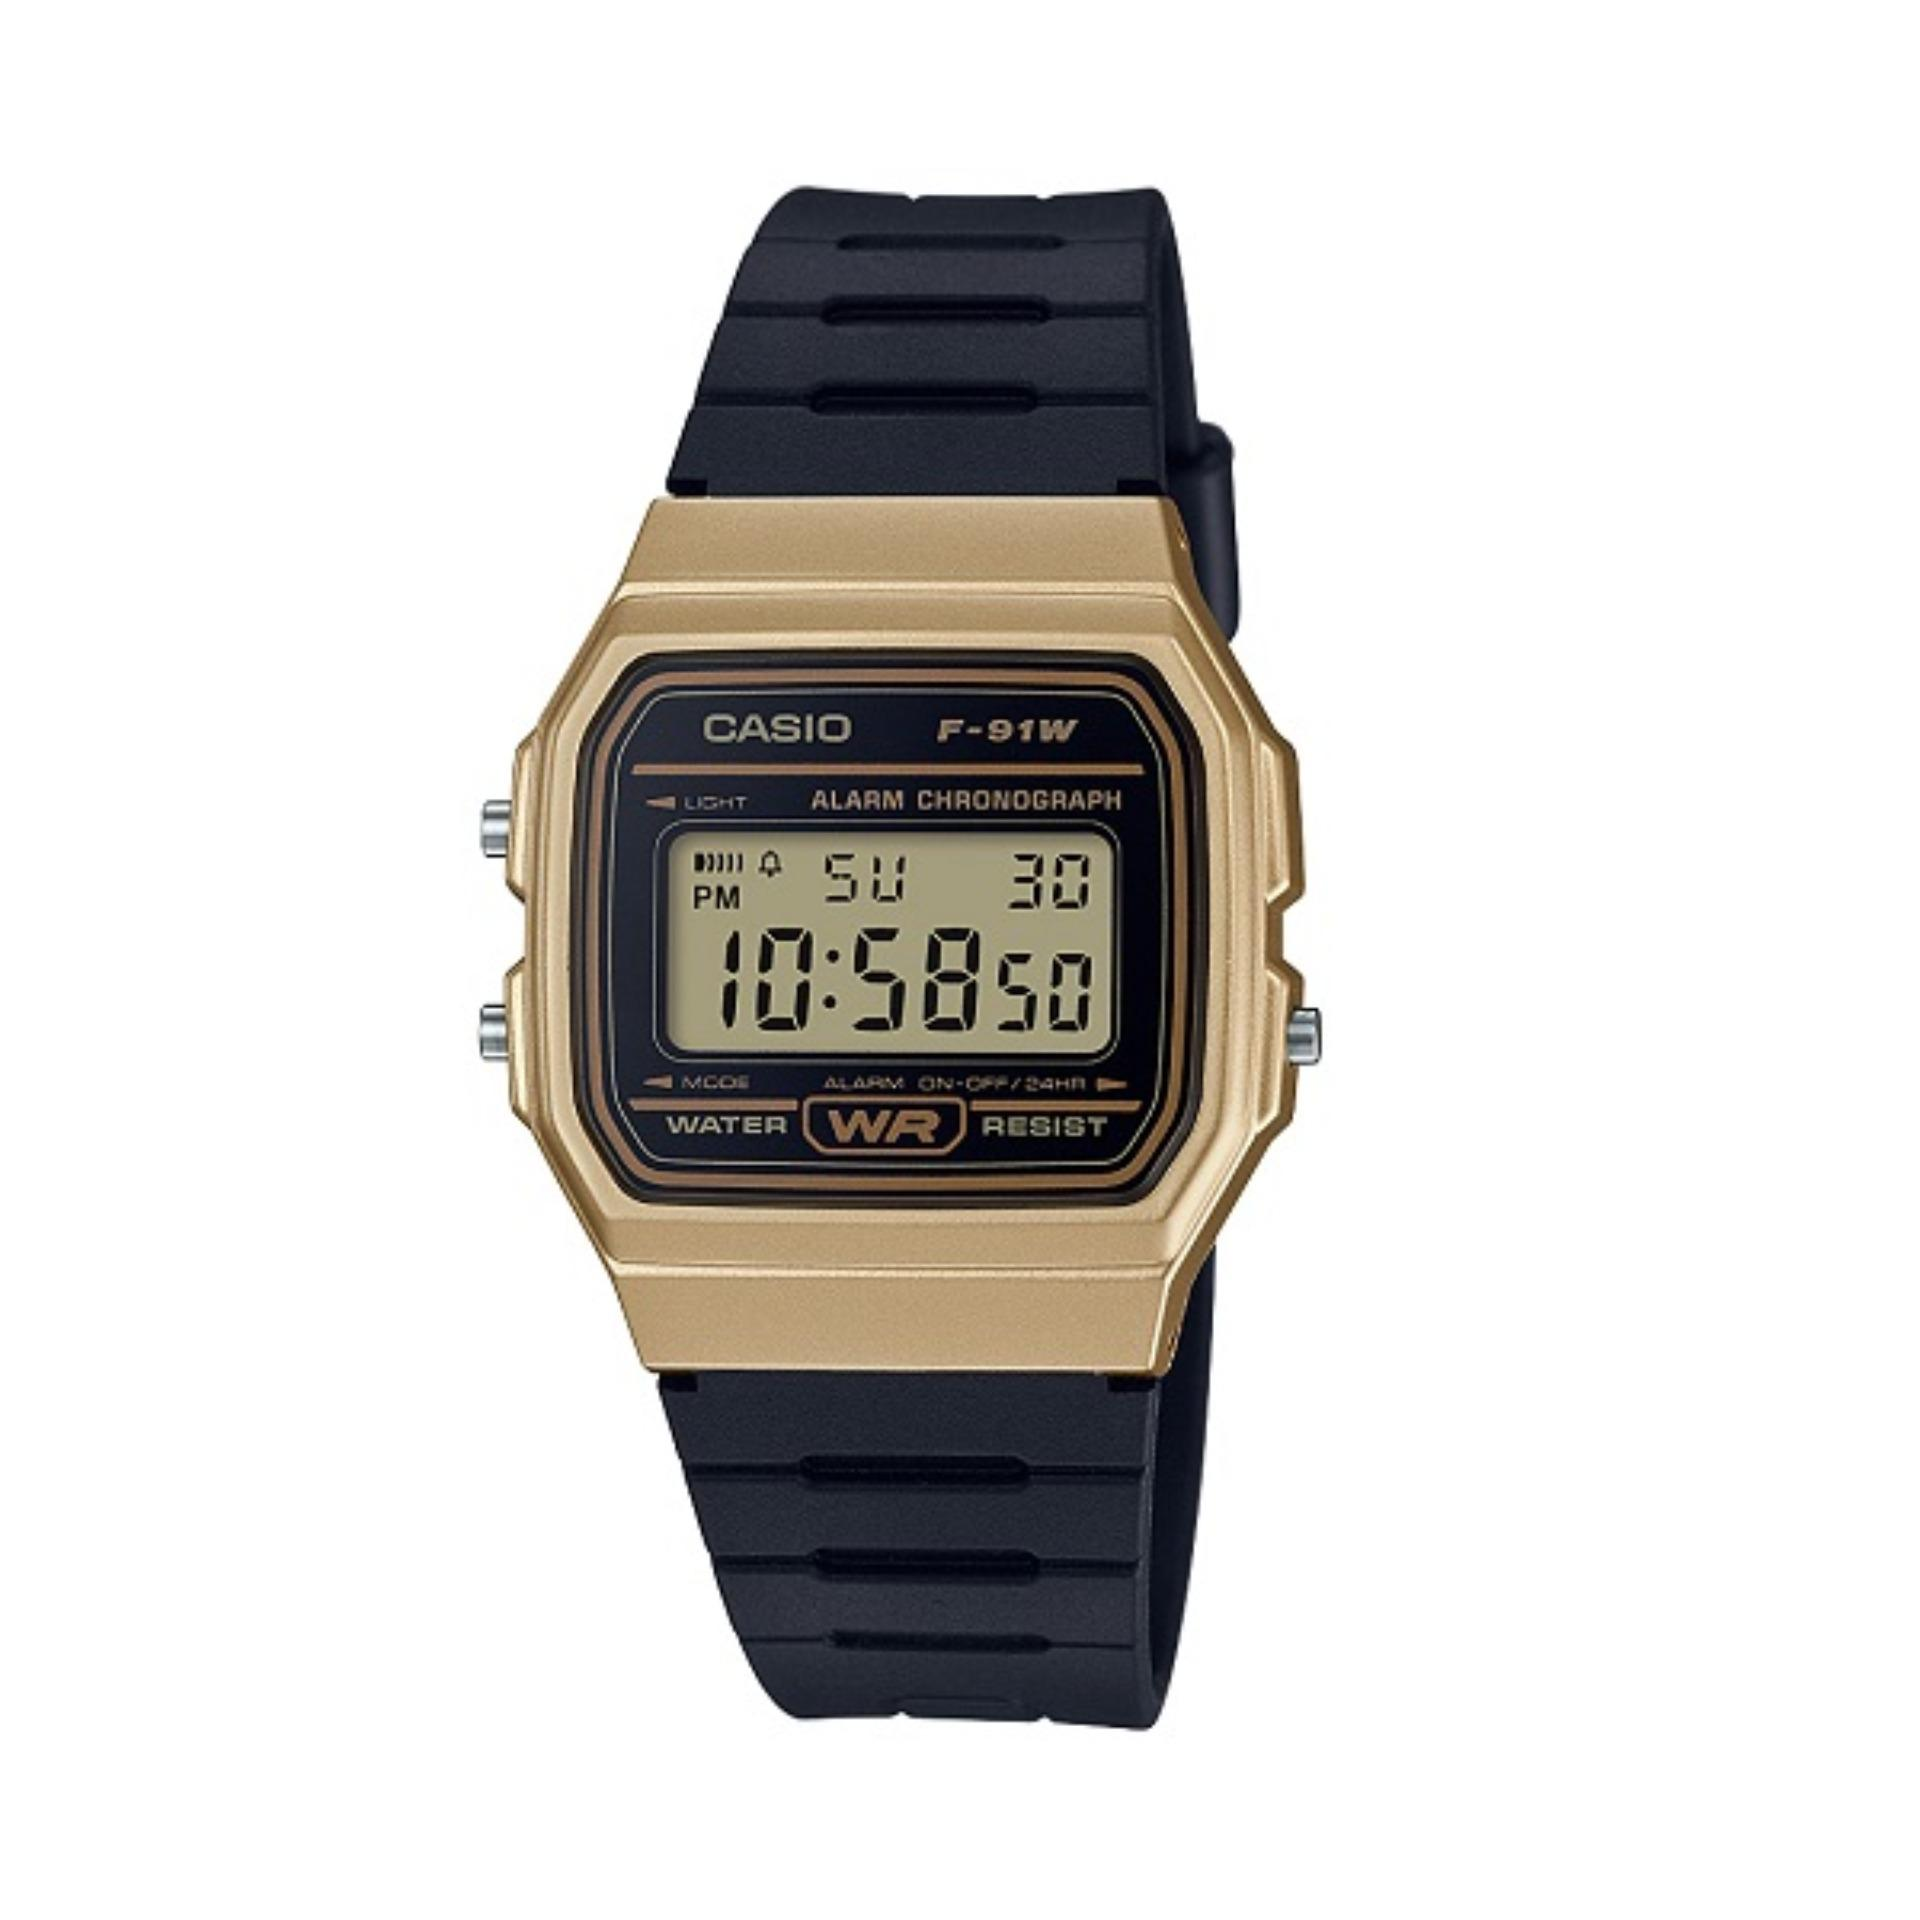 47b14203eb1 Casio Philippines  Casio price list - Casio Watches for Men   Women for  sale